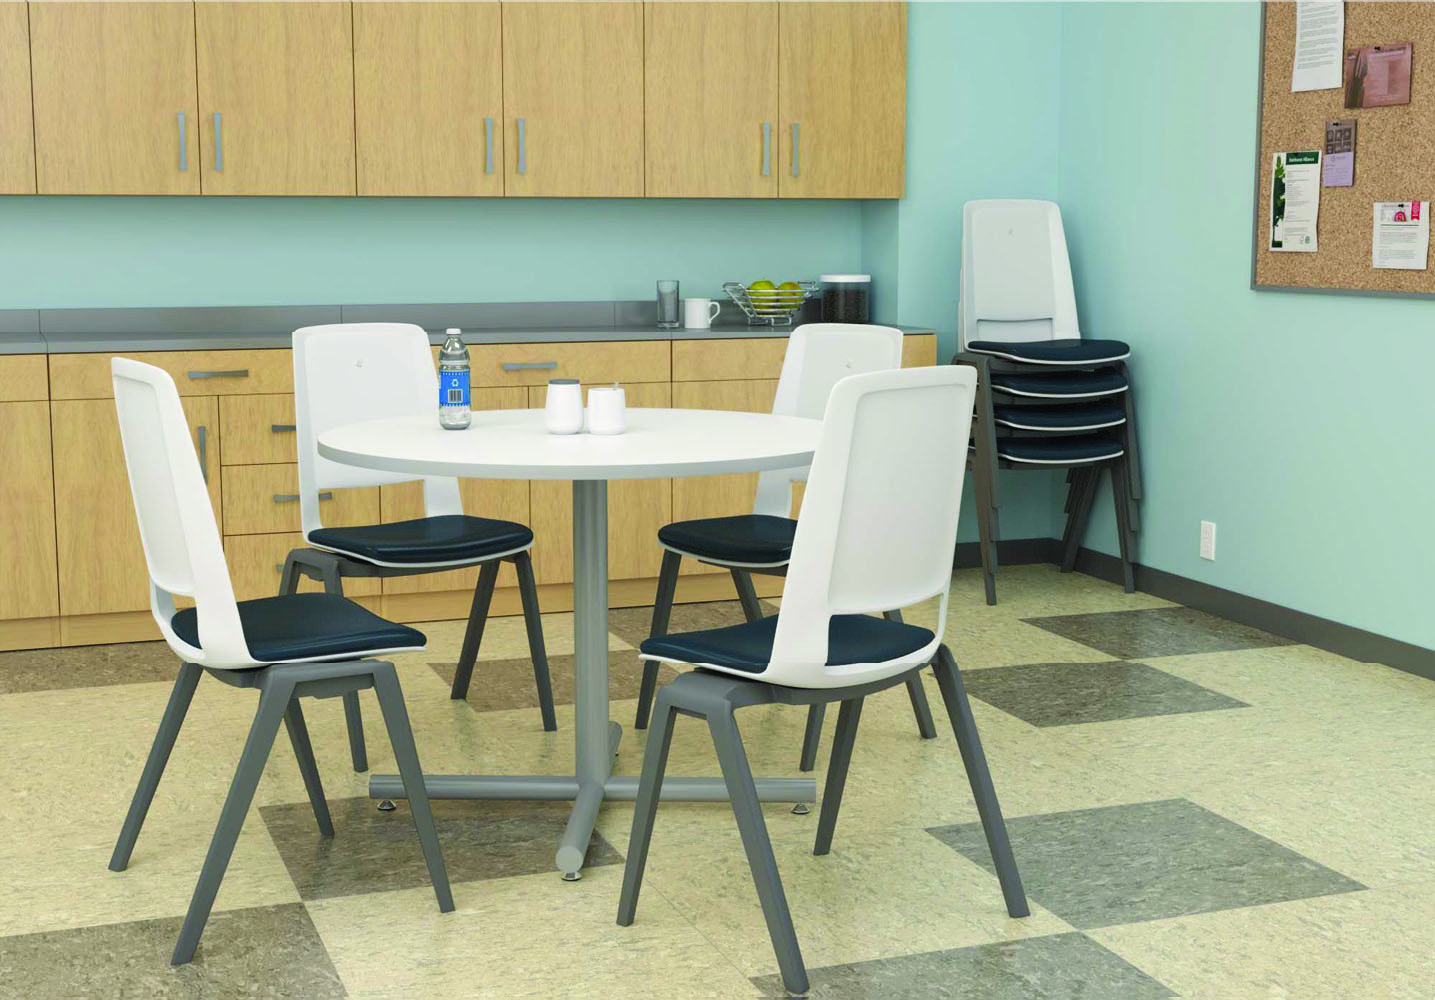 office chair alternatives cheap toddler chairs cafeteria tables and - break room furniture